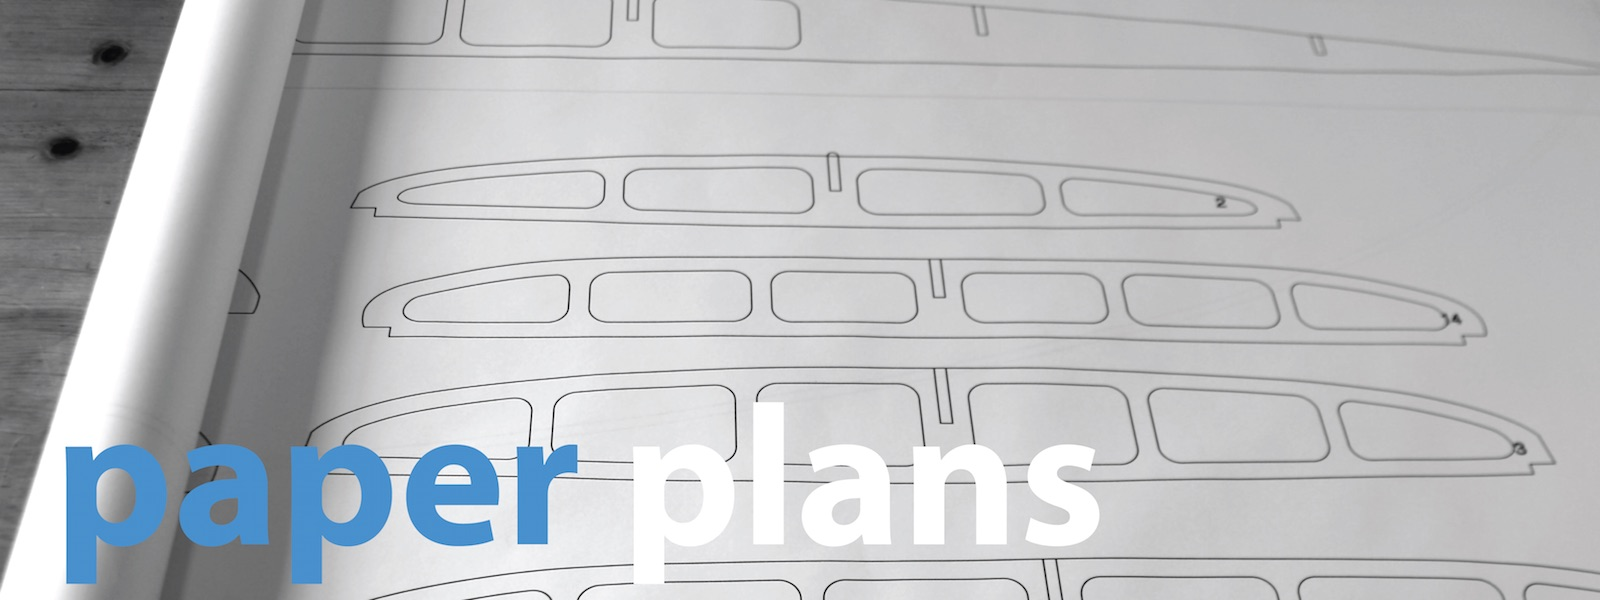 paddleboard plans - paper